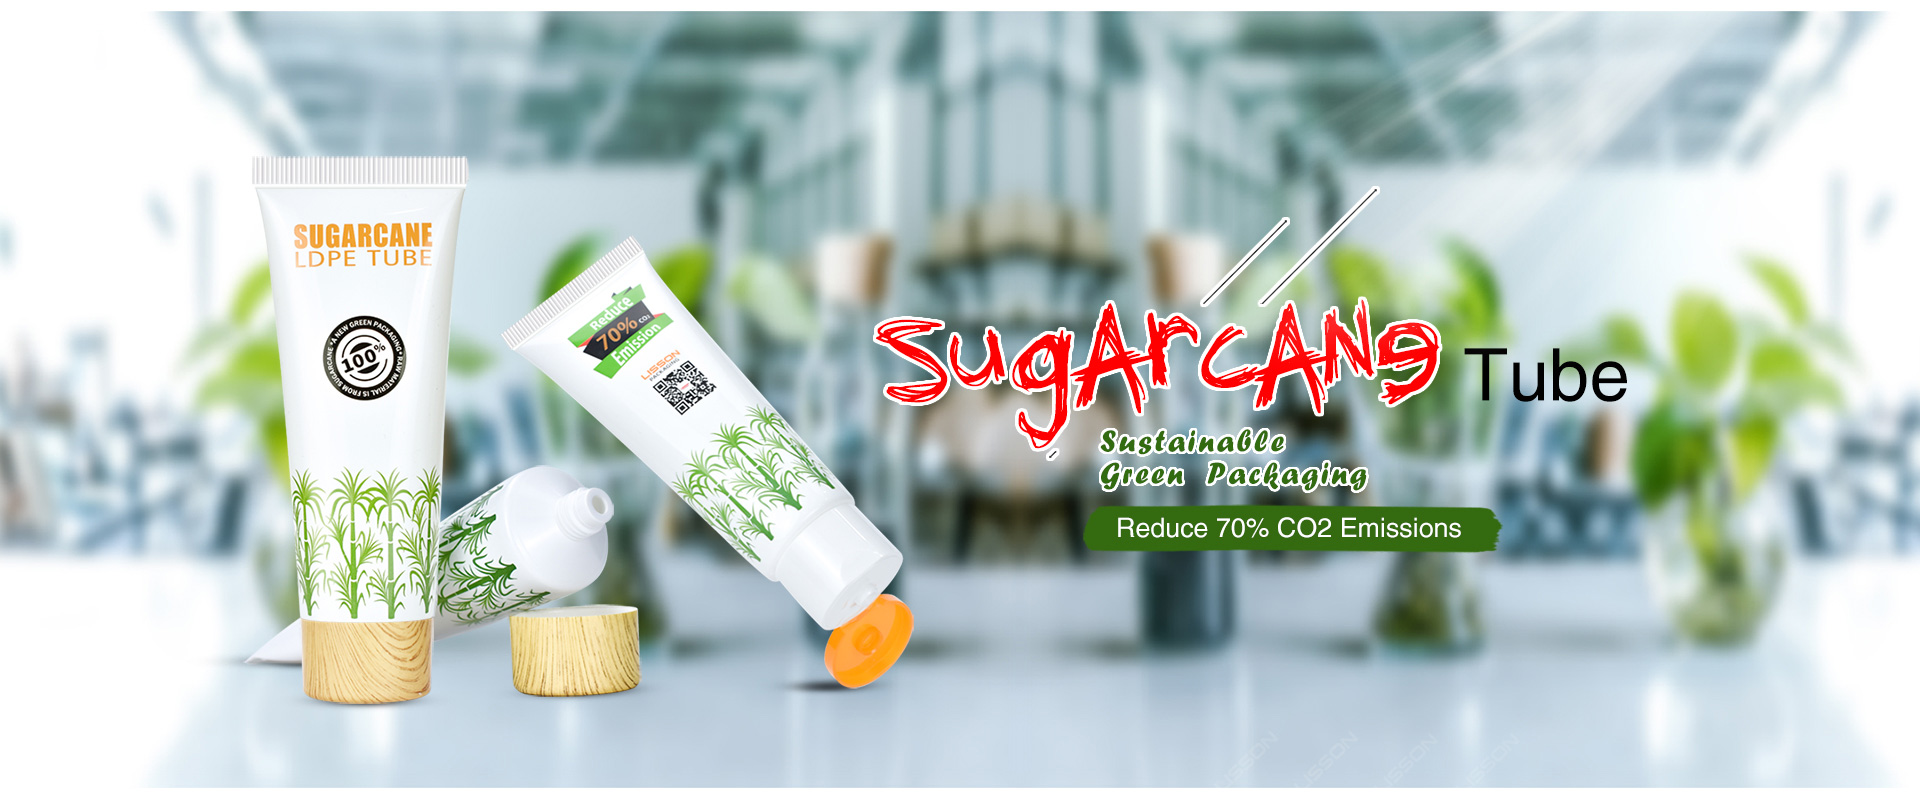 Green packaging Sugarcane Tube for Cosmetics